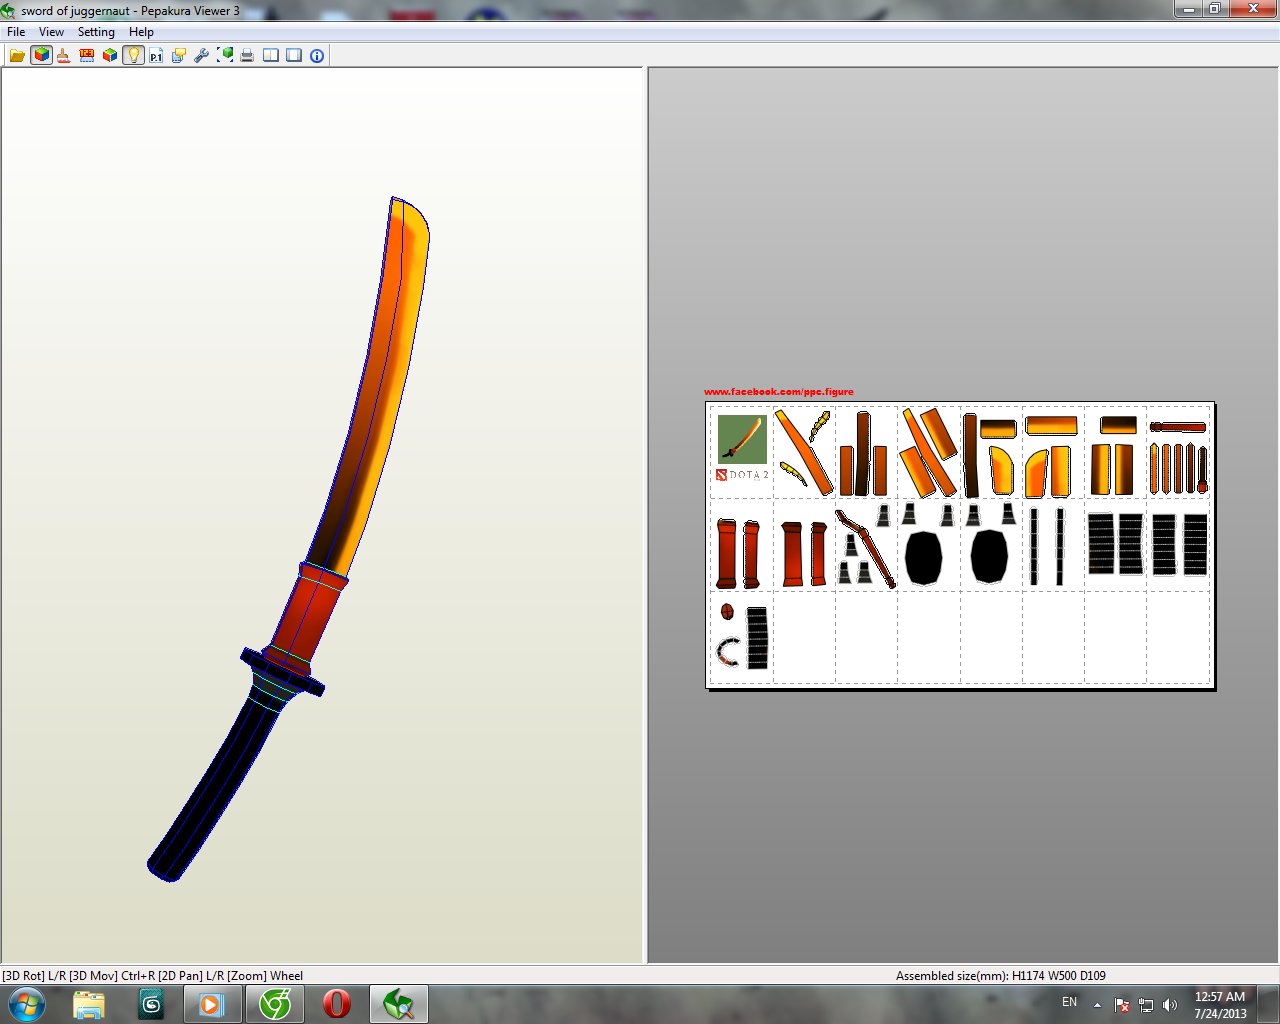 Dota 2 Sword Of Juggernaut Dota 2 Papercraft